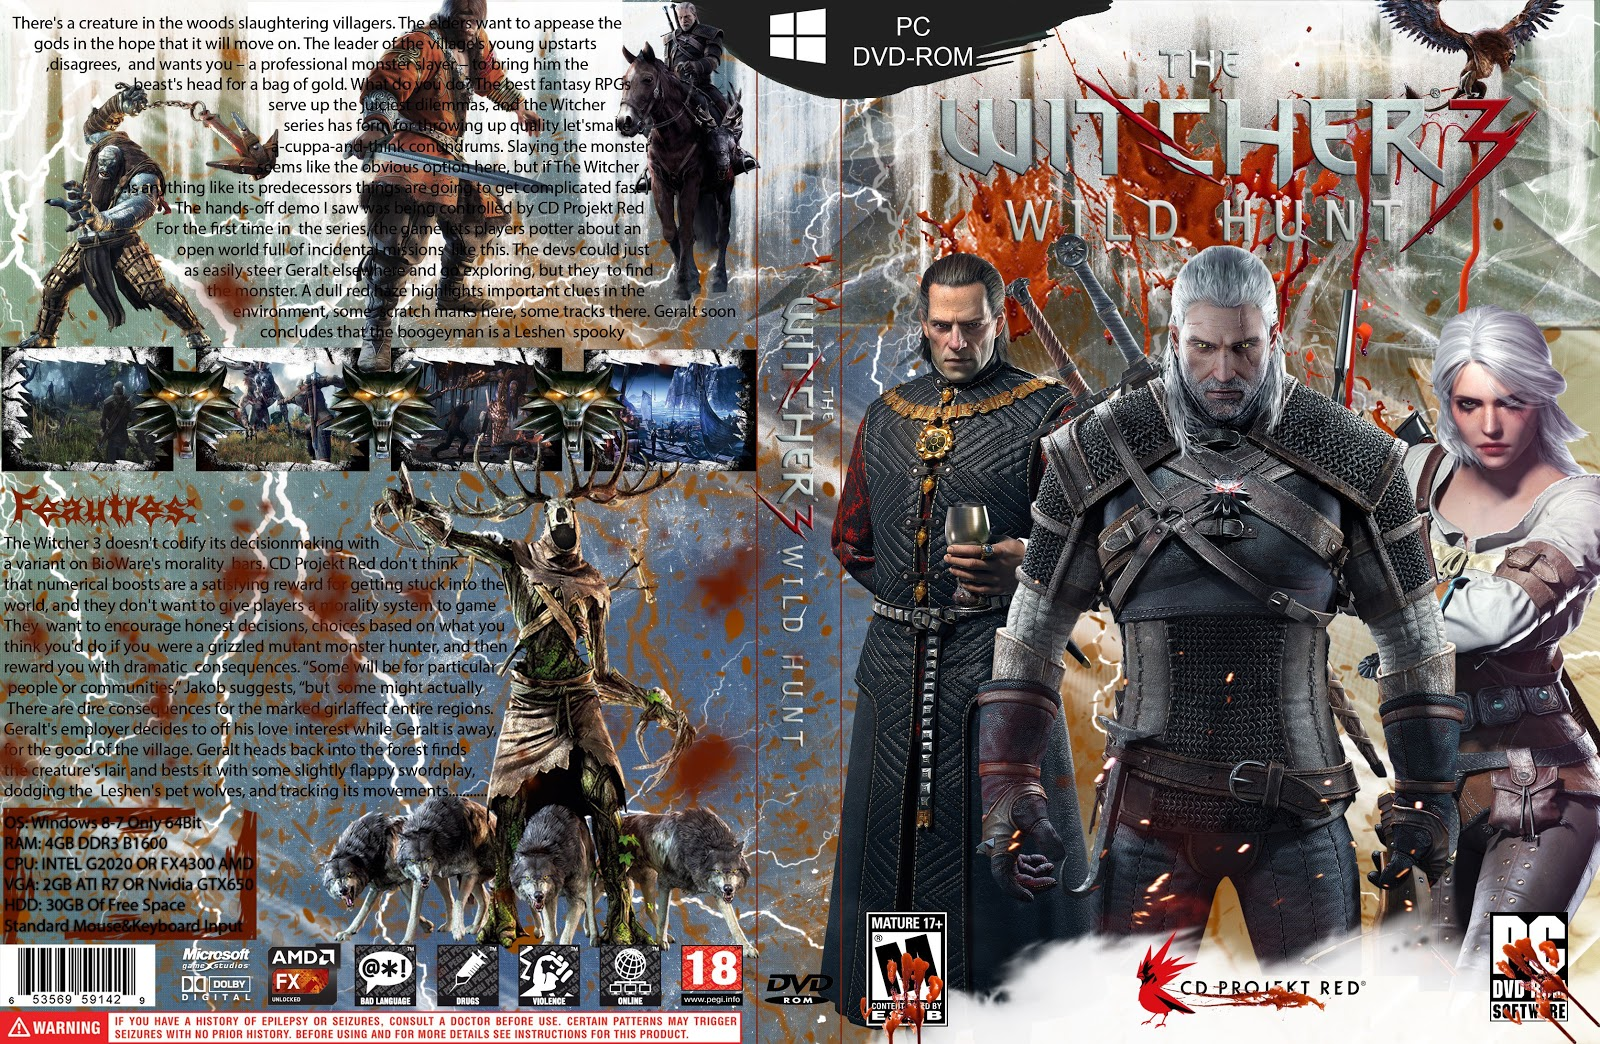 Capa The Witcher 3 Wild Hunt PC